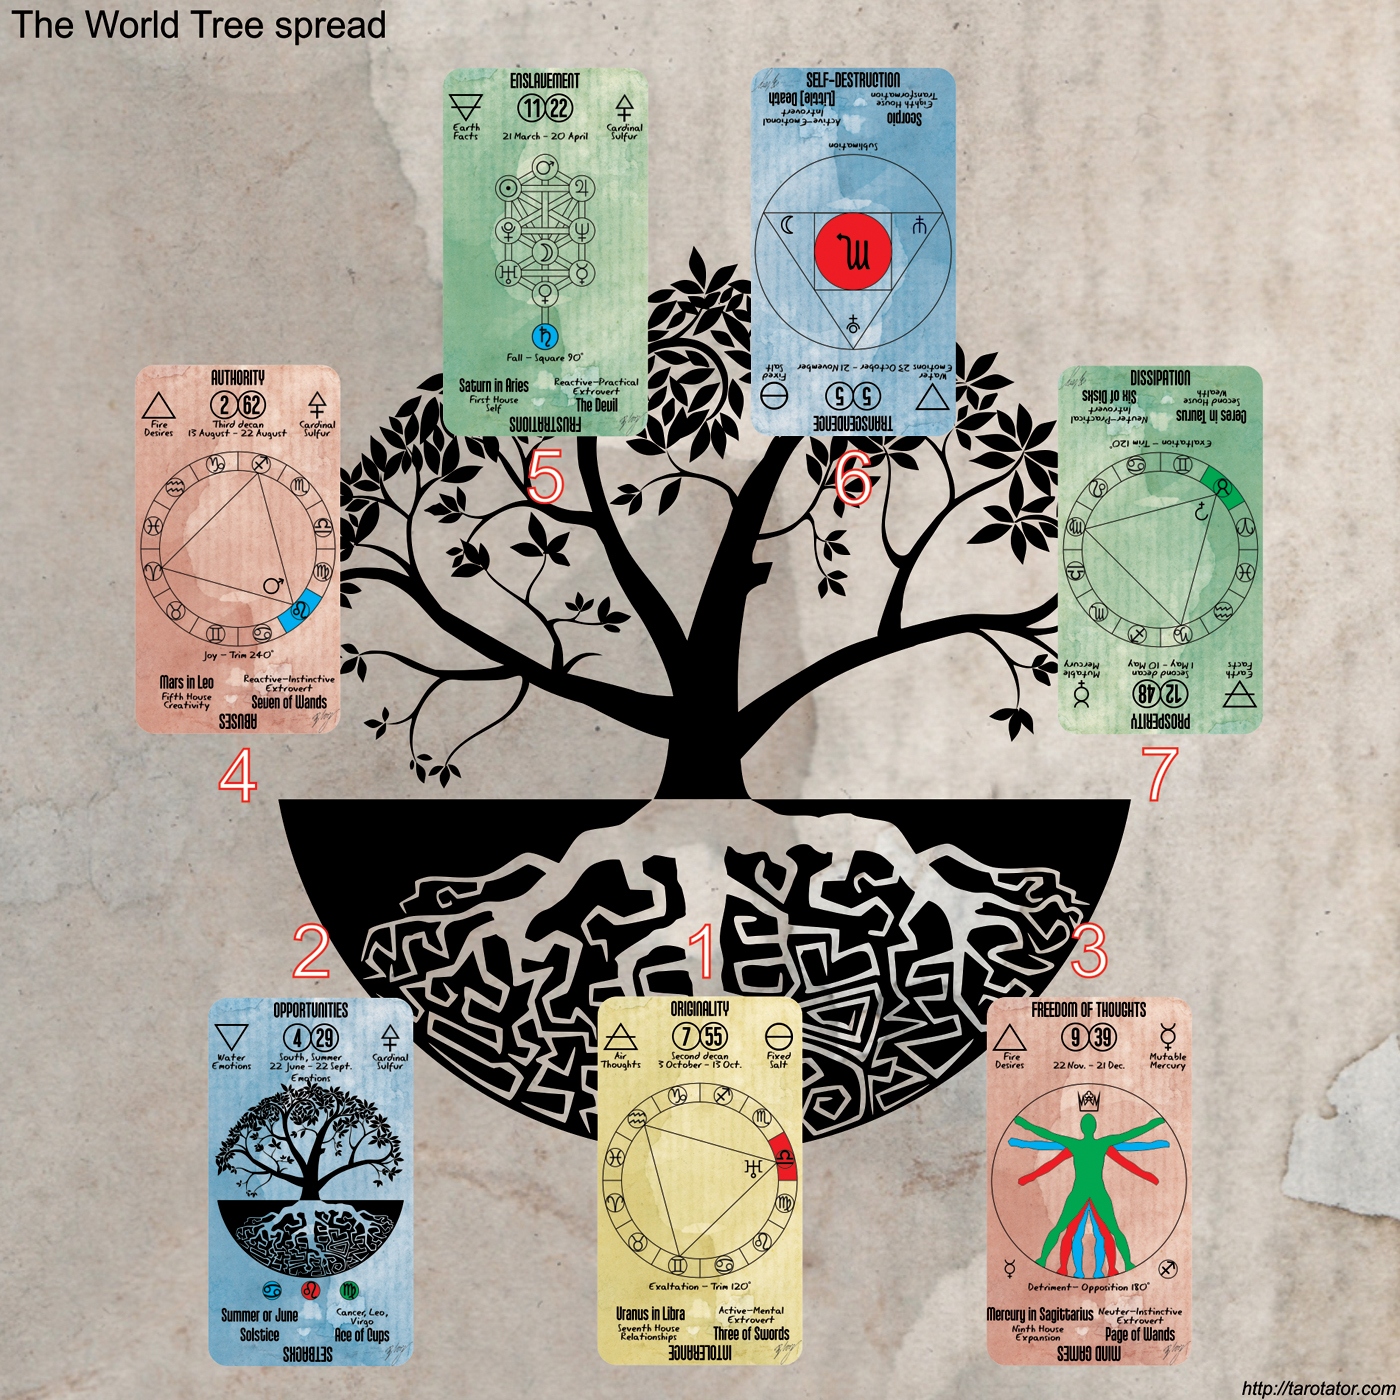 The World Tree spread Attila Blaga